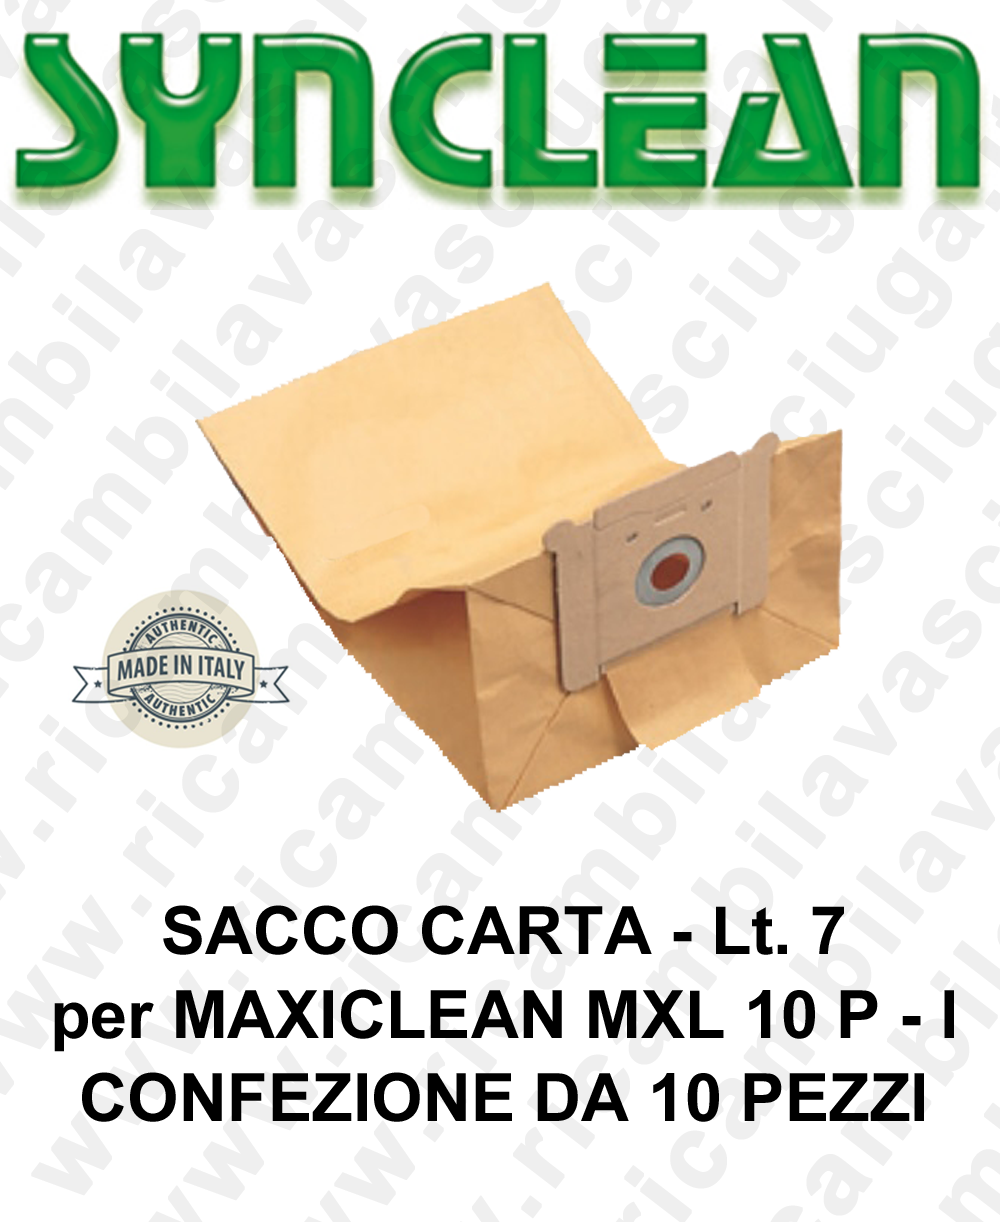 Sacco carta litres 7 for MAXICLEAN mod. MXL 10 P - I 10 pieces for box